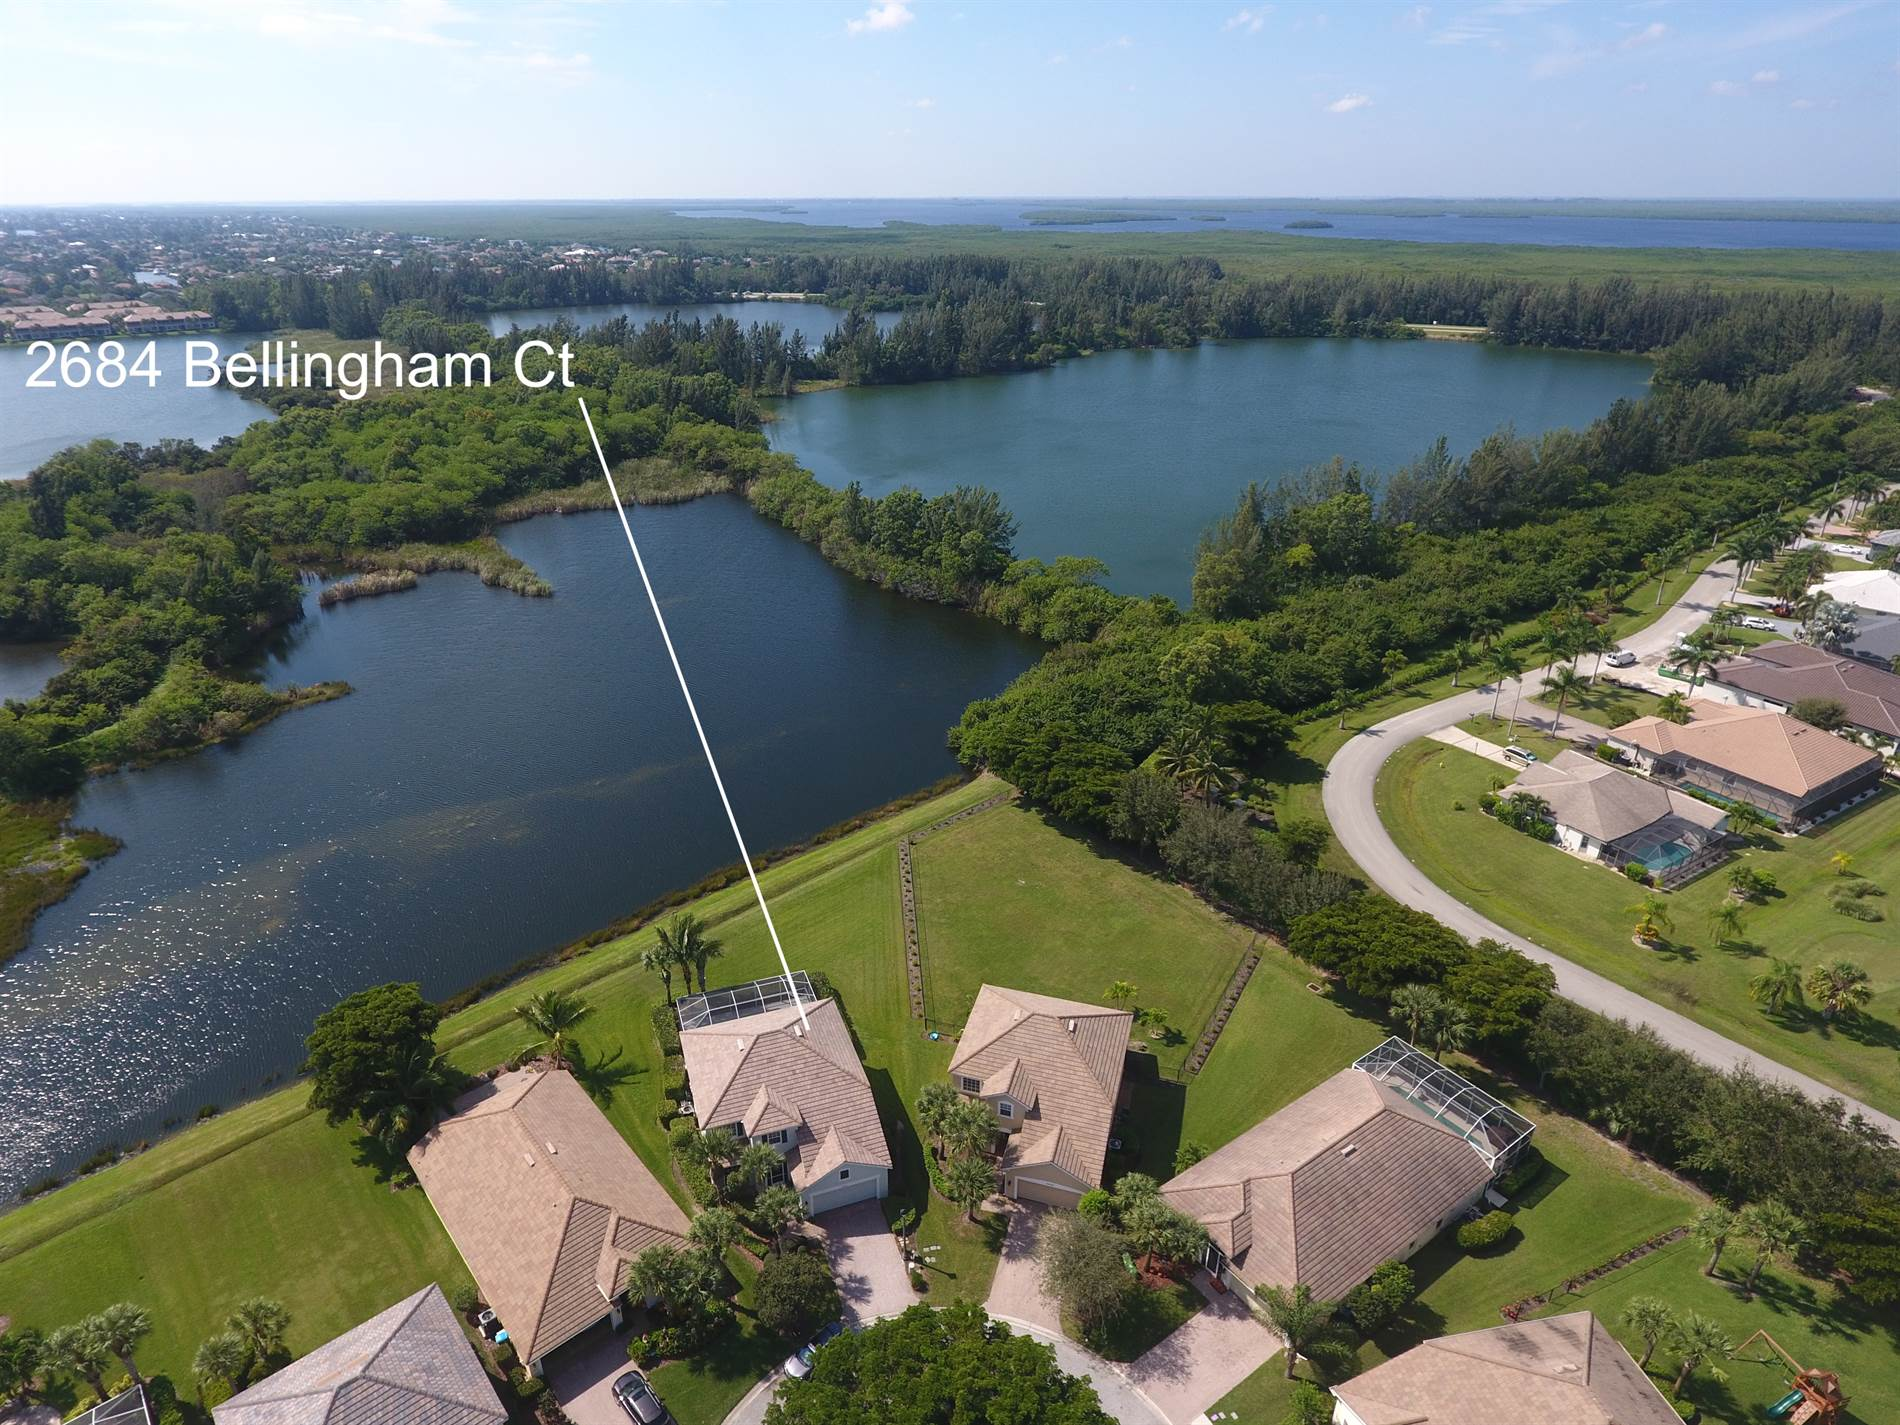 2684 Bellingham Ct, Cape Coral, FL 33991